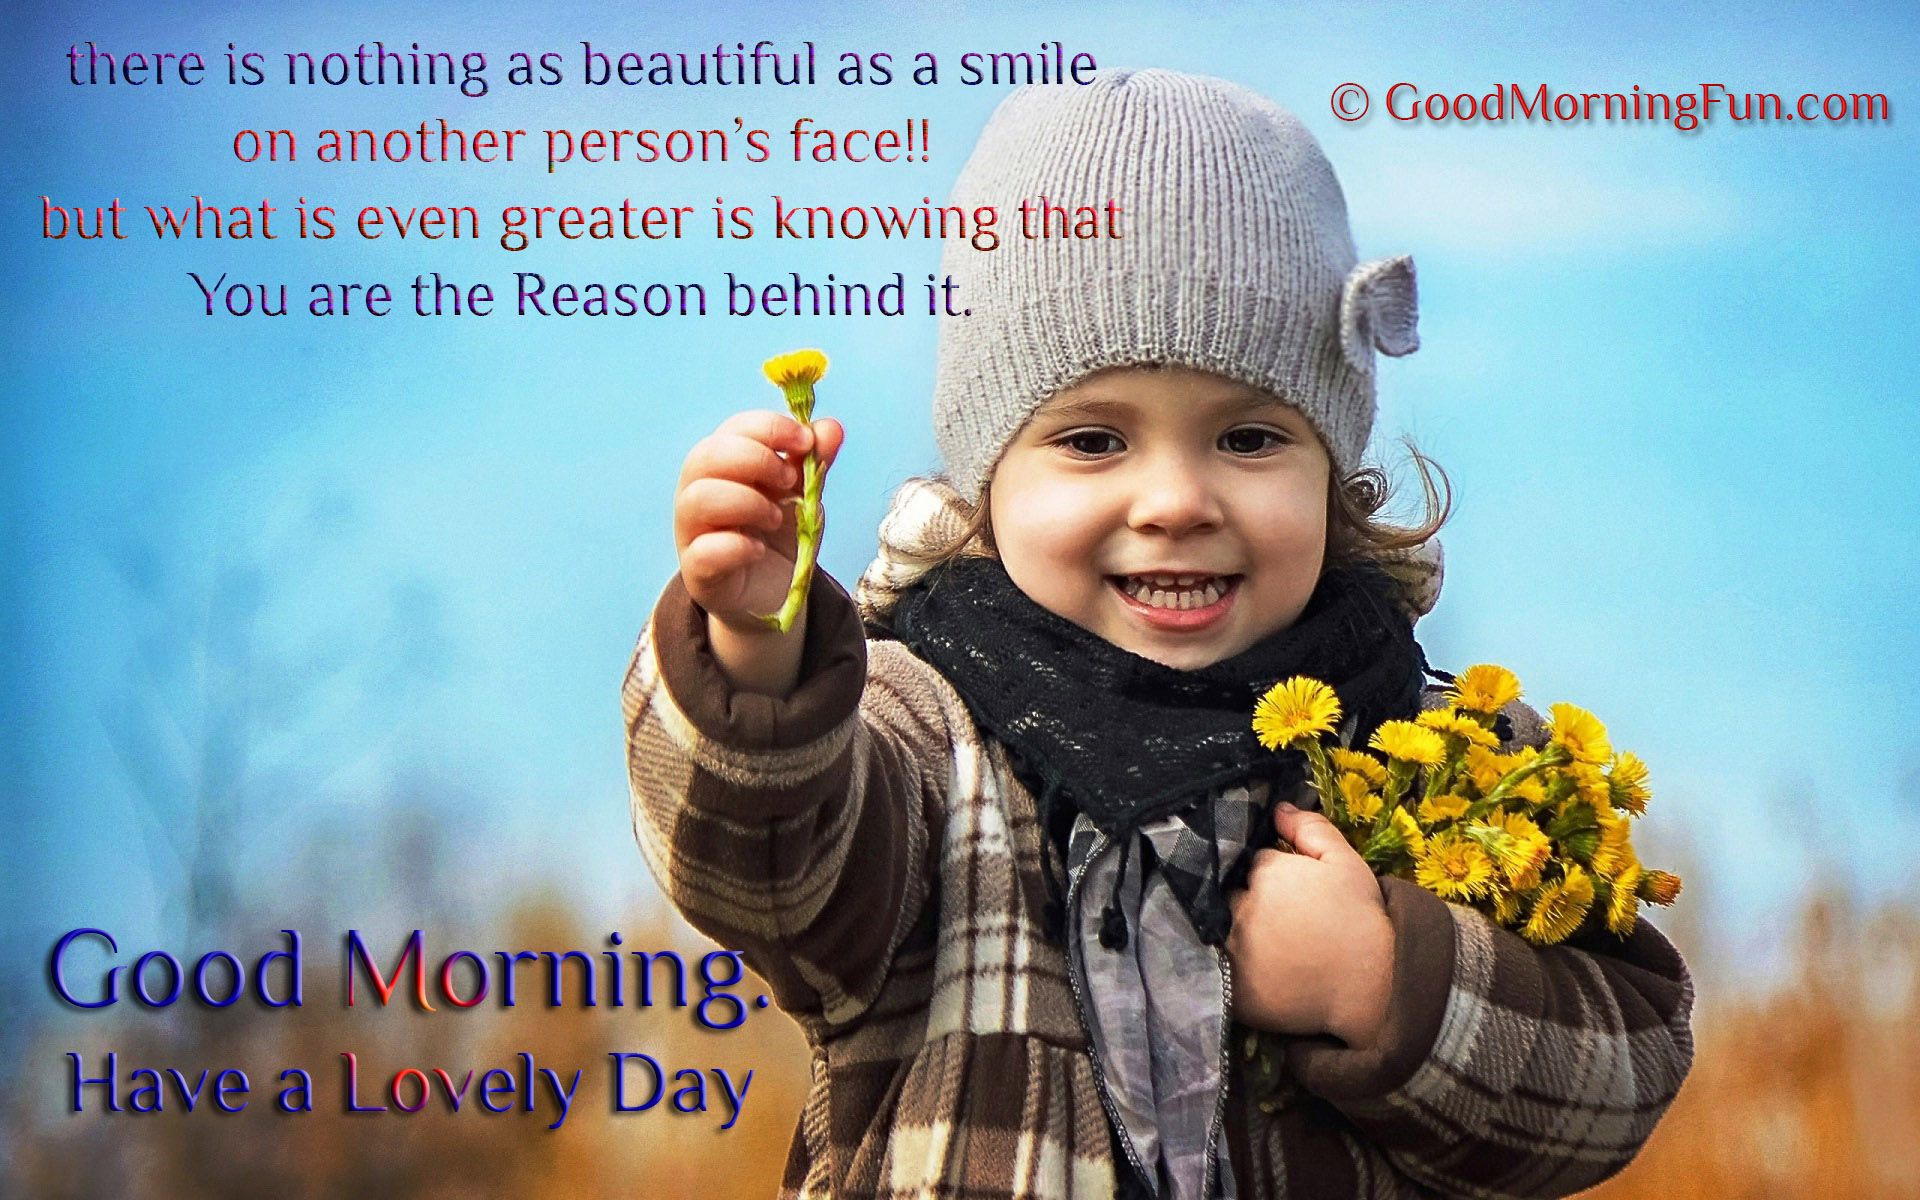 good morning smile quotes flower offering cute baby smile sweet